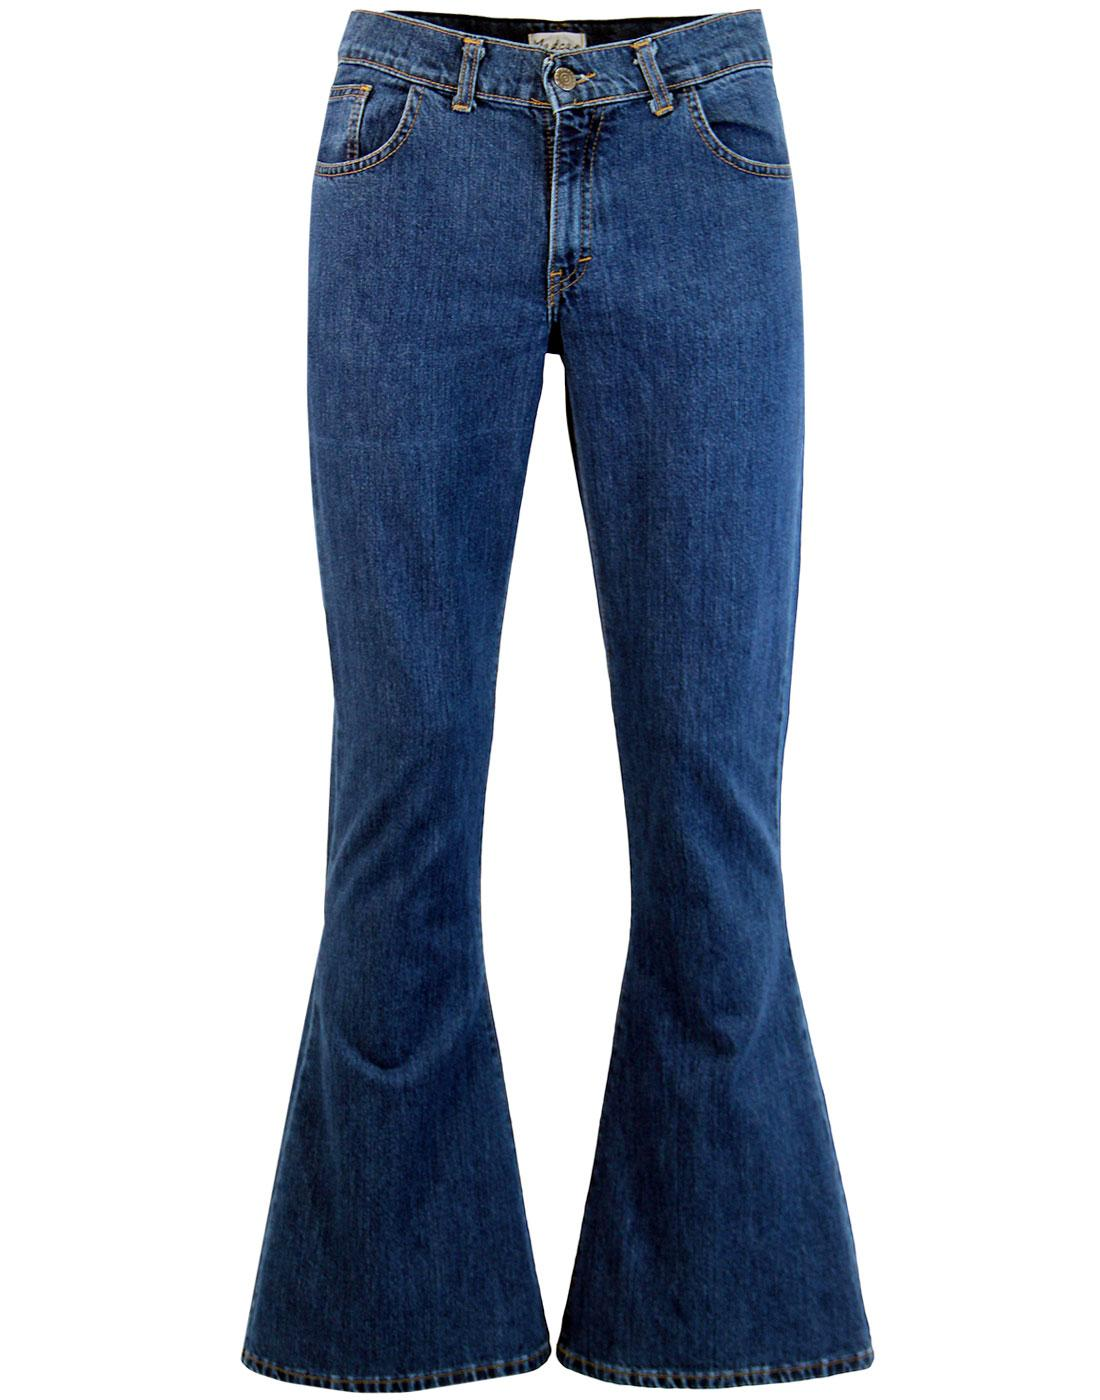 Image result for mens flared jeans